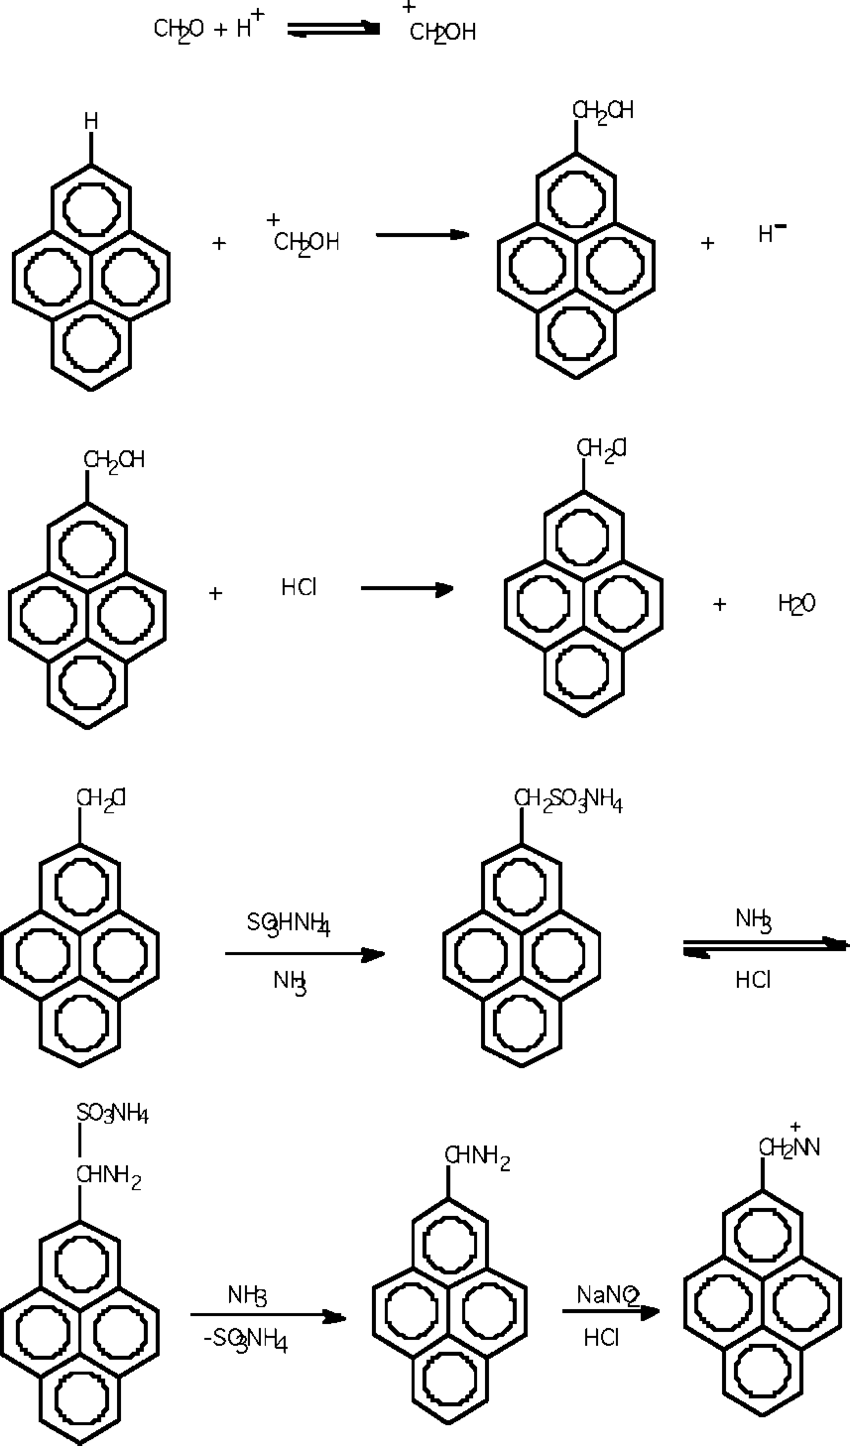 Pdam Logo Png : Synthesis, Pathway, 1-Pyrenyldiazomethane, (PDAM)., Download, Scientific, Diagram